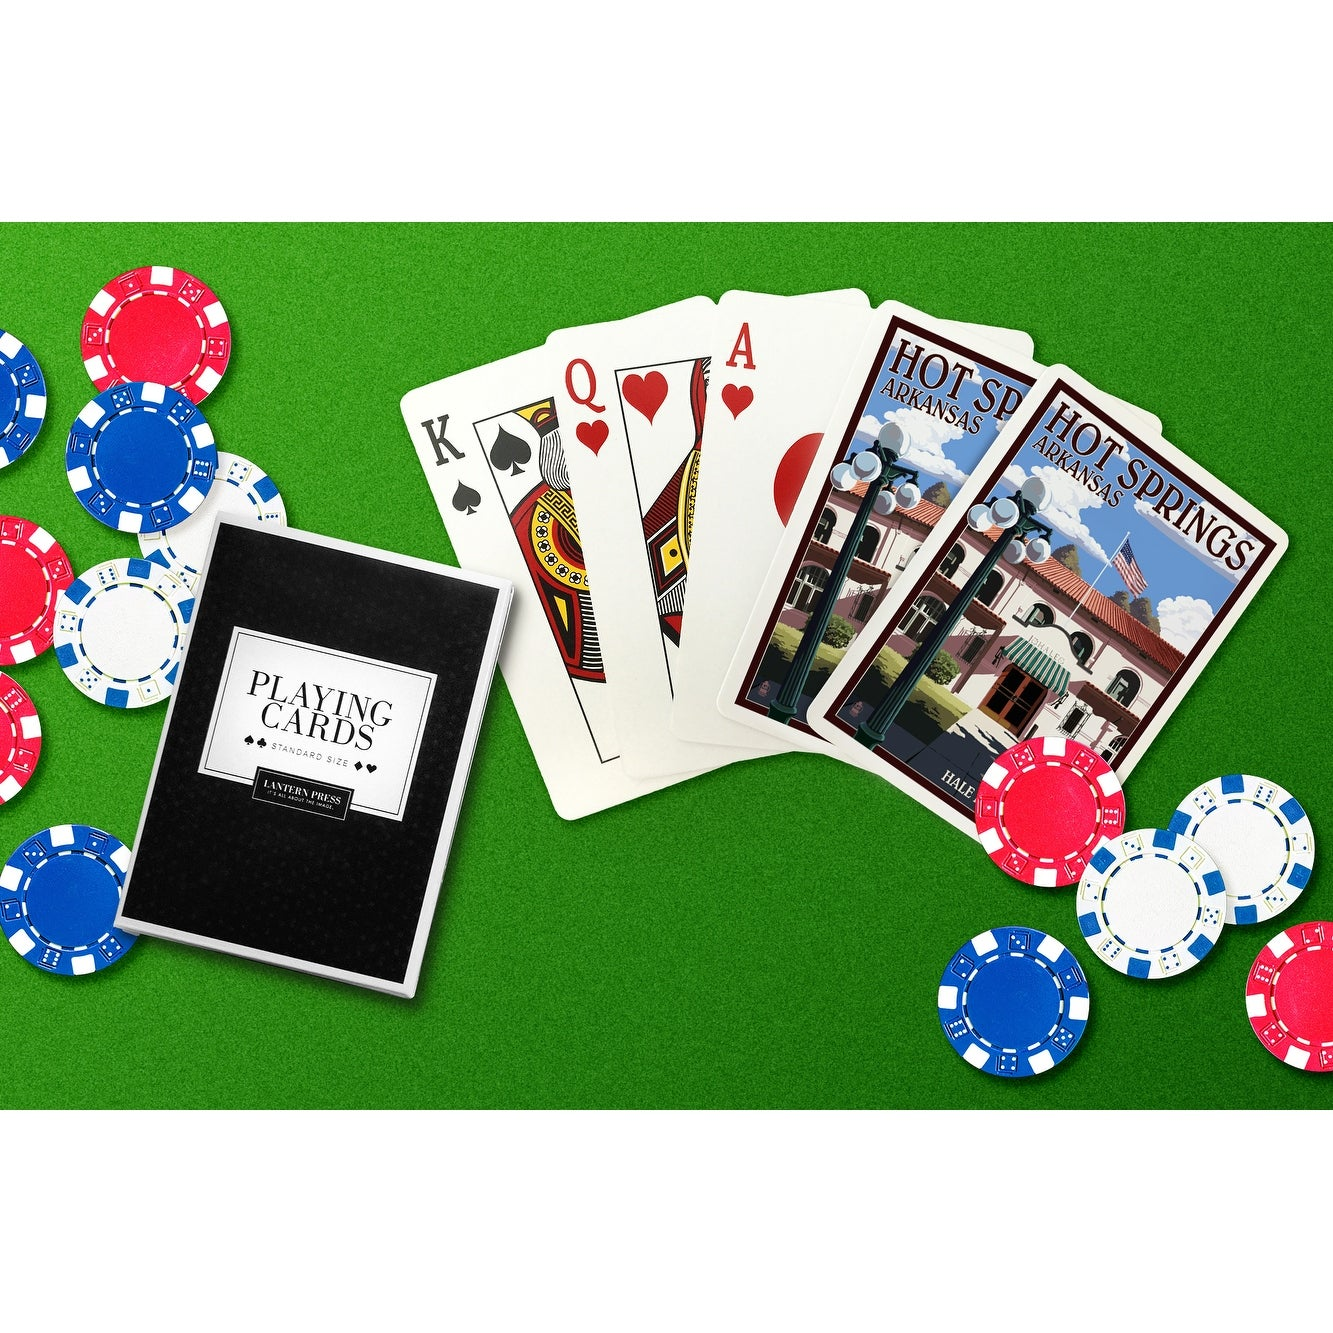 A Quality Products 24K Gold Foil Poker Playing Cards SP Playing Cards